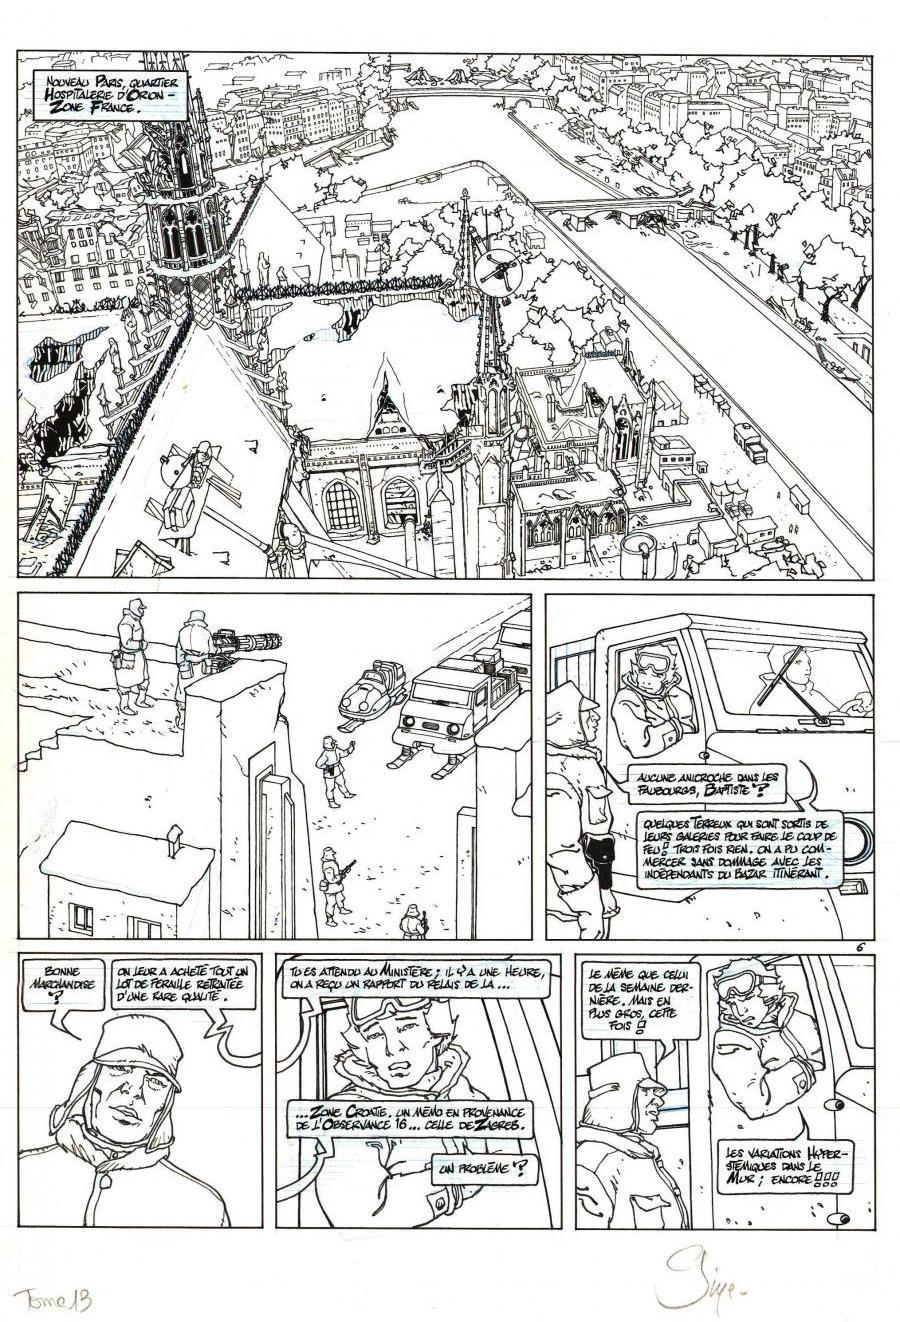 Original comic page 6 from NEIGE Issue 13 - Le Mur par Christian GINE